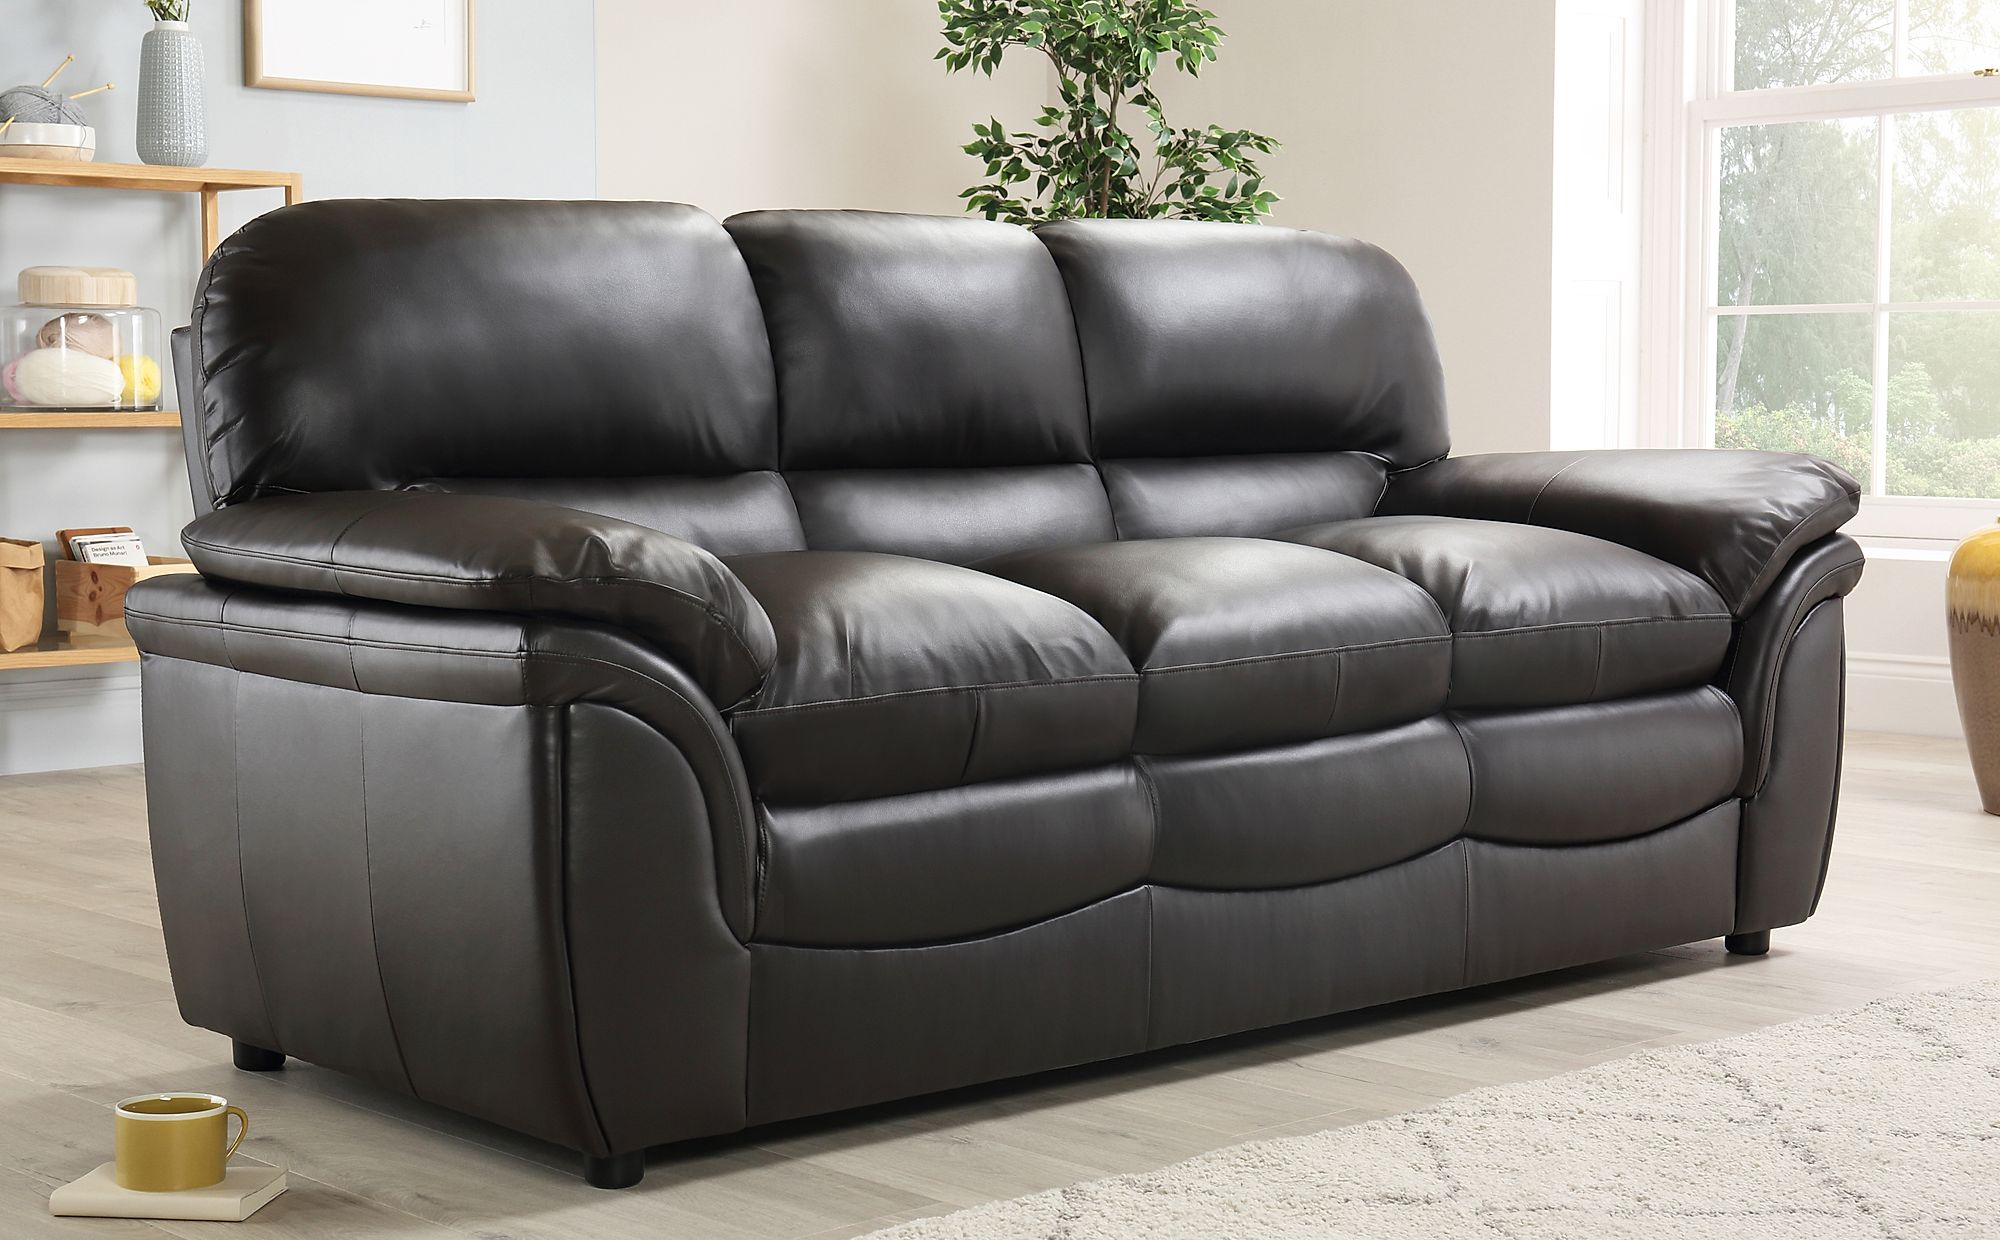 Rochester brown leather sofa sofas group settee unit range - Living room furniture rochester ny ...